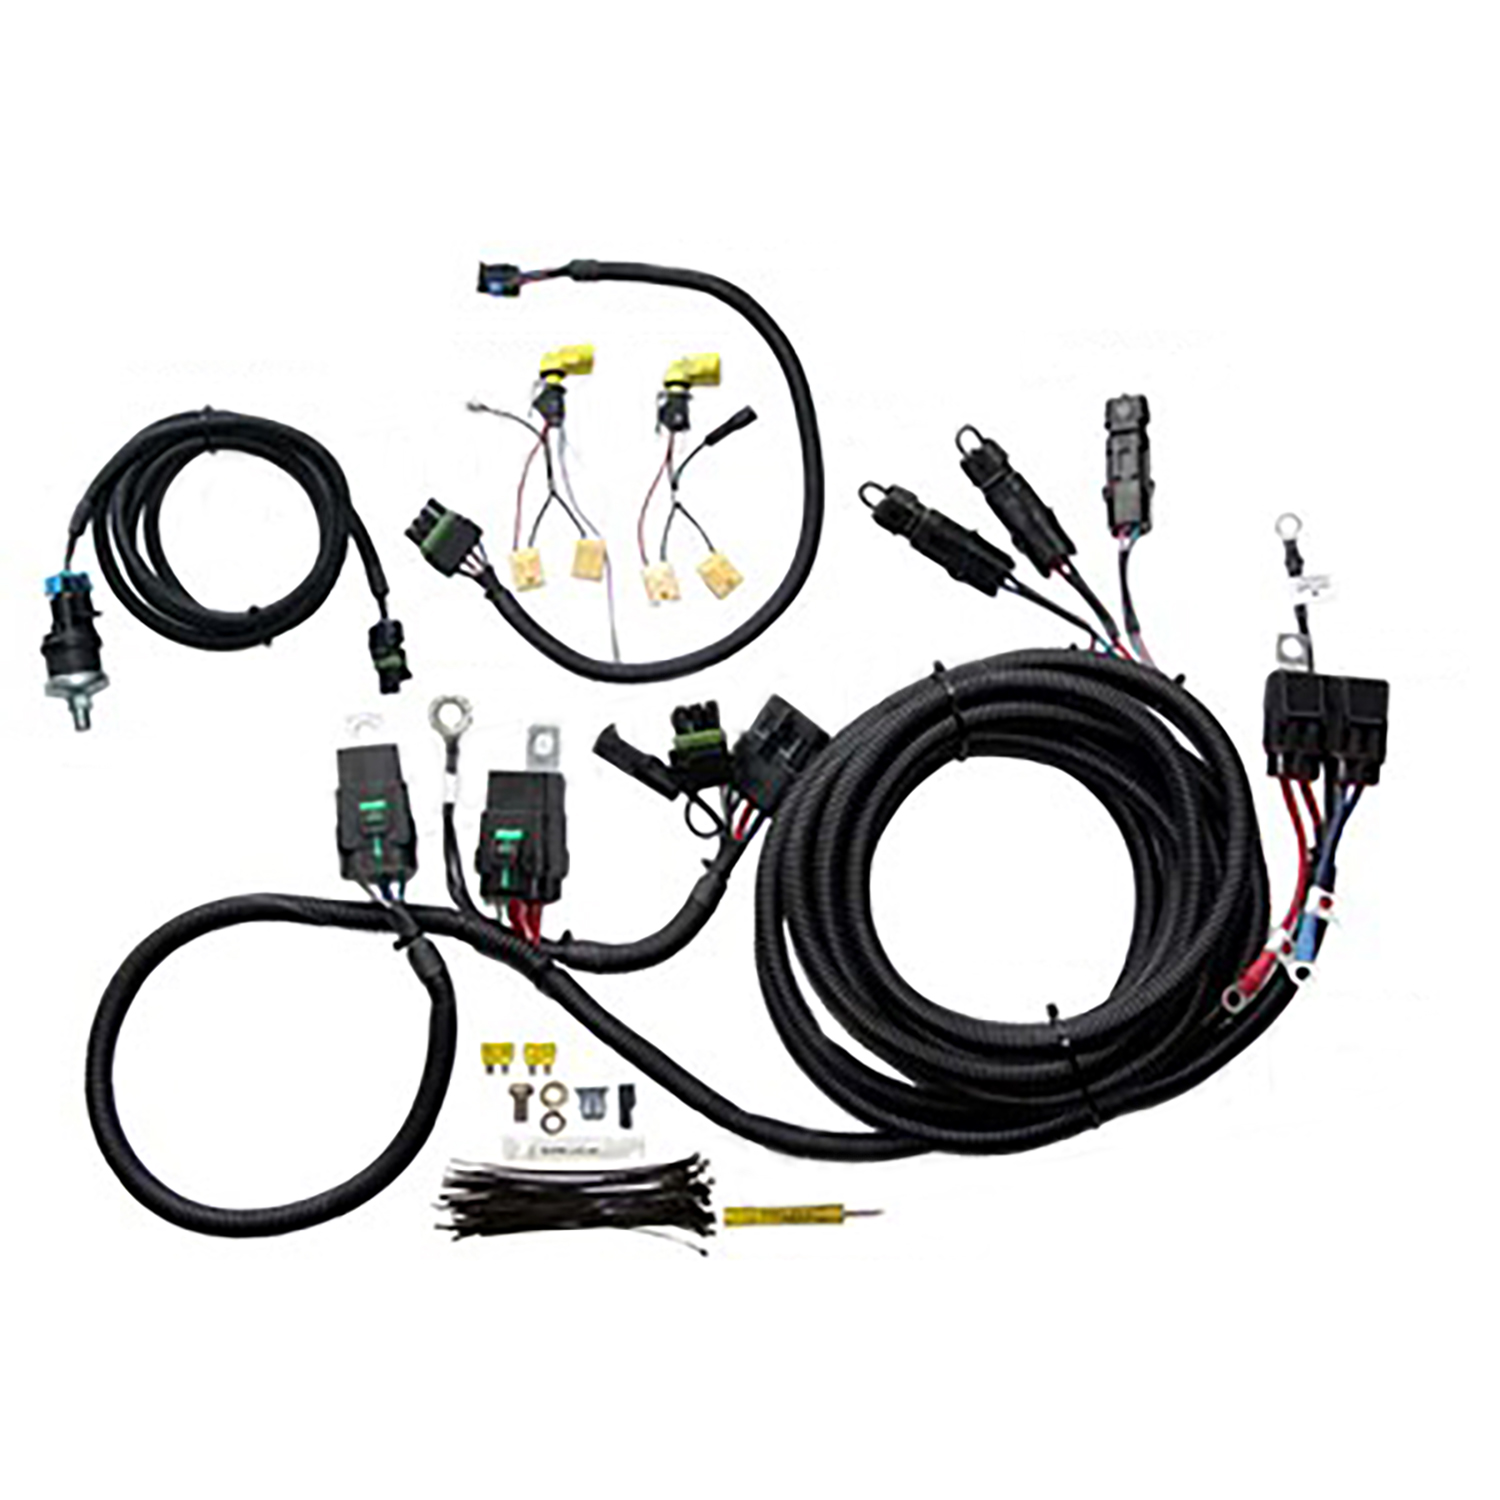 g7 fuel pump wiring harness wiring diagram data GM Fuel Pump Wiring Diagram g7 fuel pump wiring harness online wiring diagram g7 fuel pump wiring harness